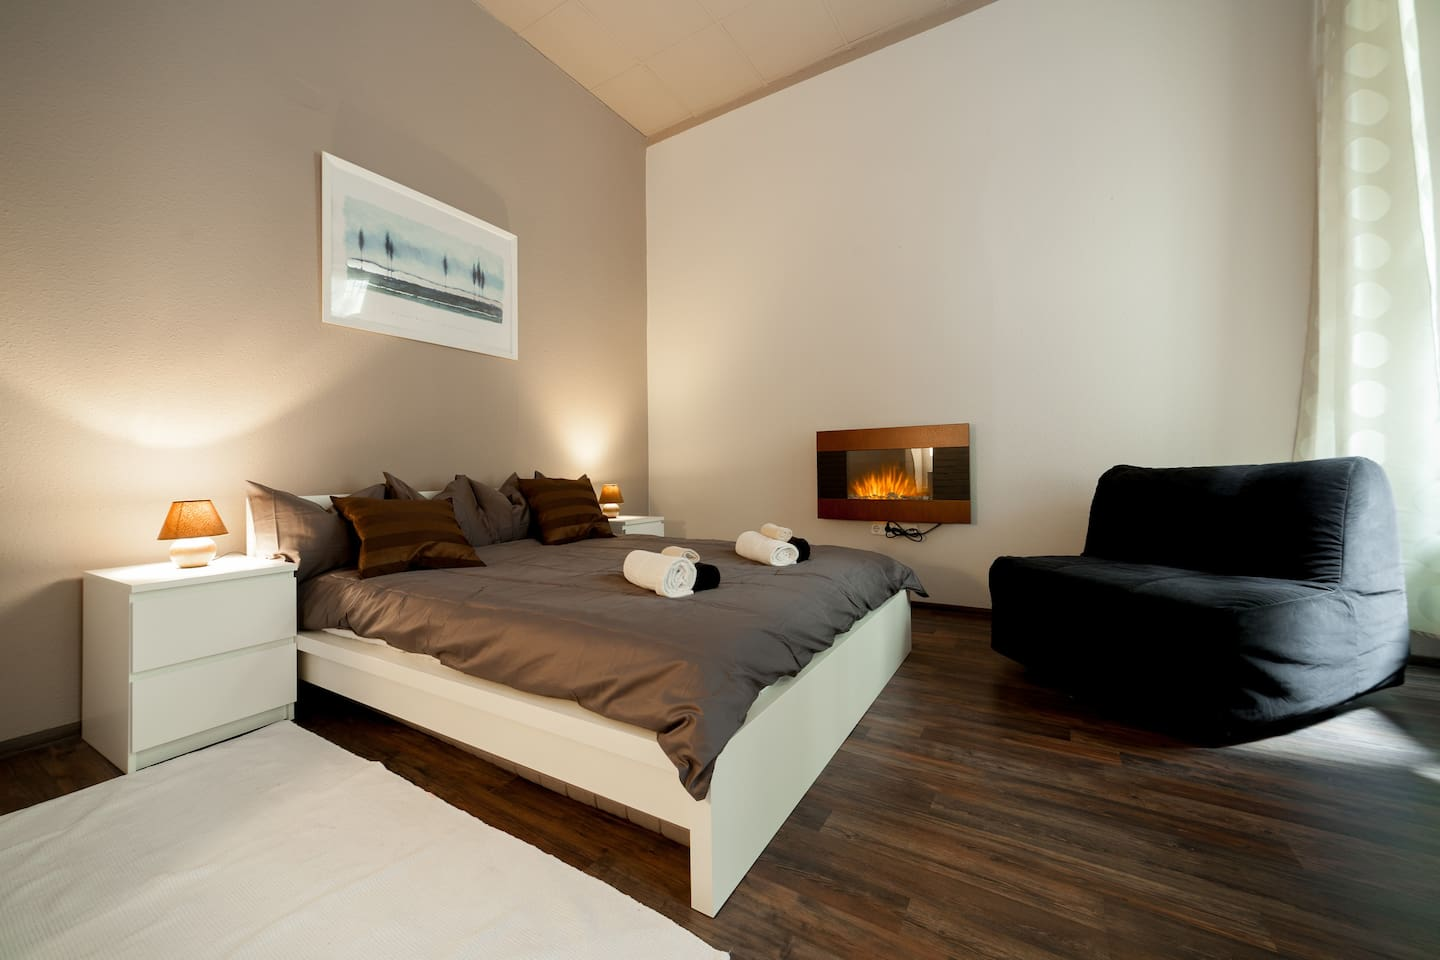 Enjoy the cozy and quiet bedroom with the romantic electric chimney